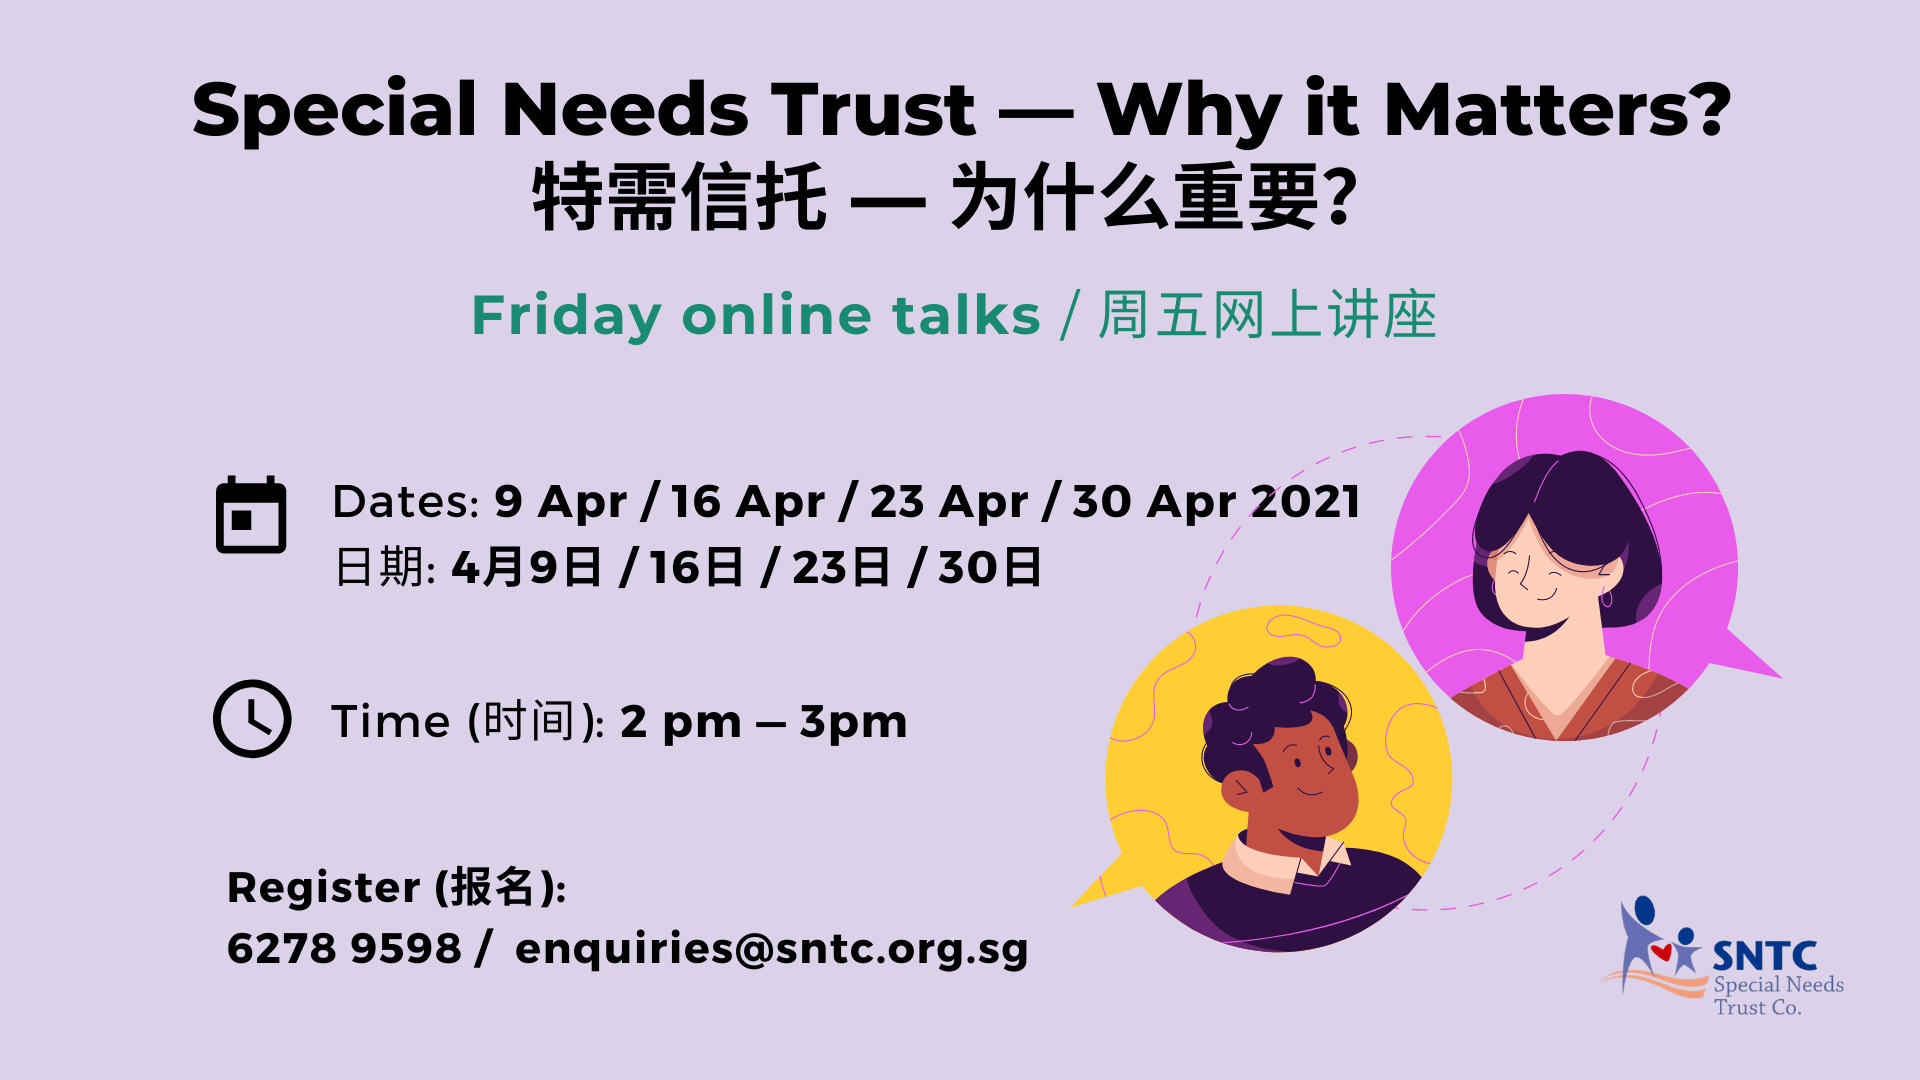 Weekly Online Talks: Special Needs Trust – Why It Matters? (特需信托 – 为什么重要?) - 9, 16, 23 And 30 Apr